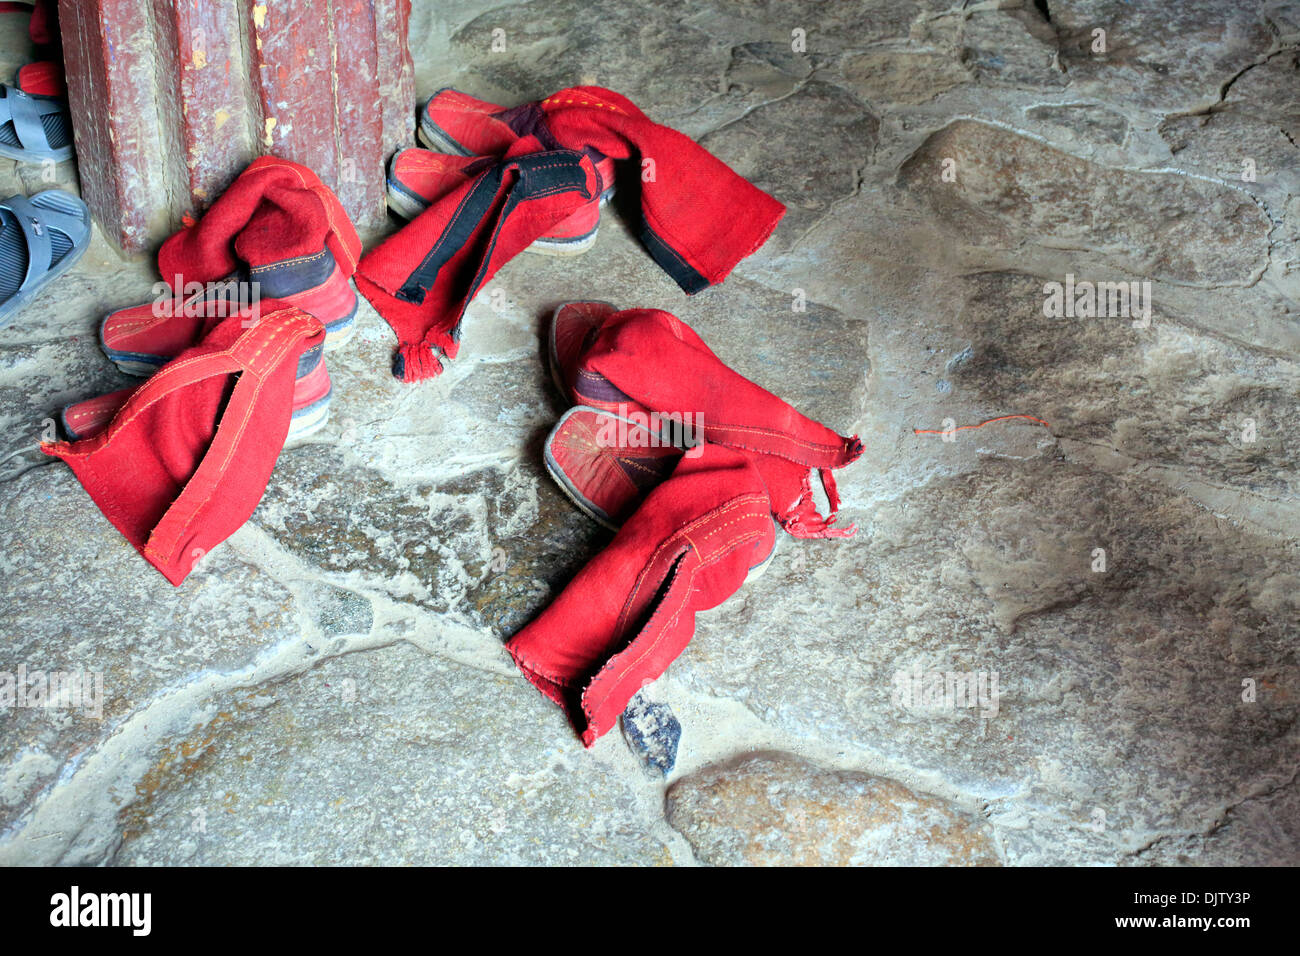 Footwear at the temple entrance, Shalu Monastery, Shigatse, Tibet, China - Stock Image